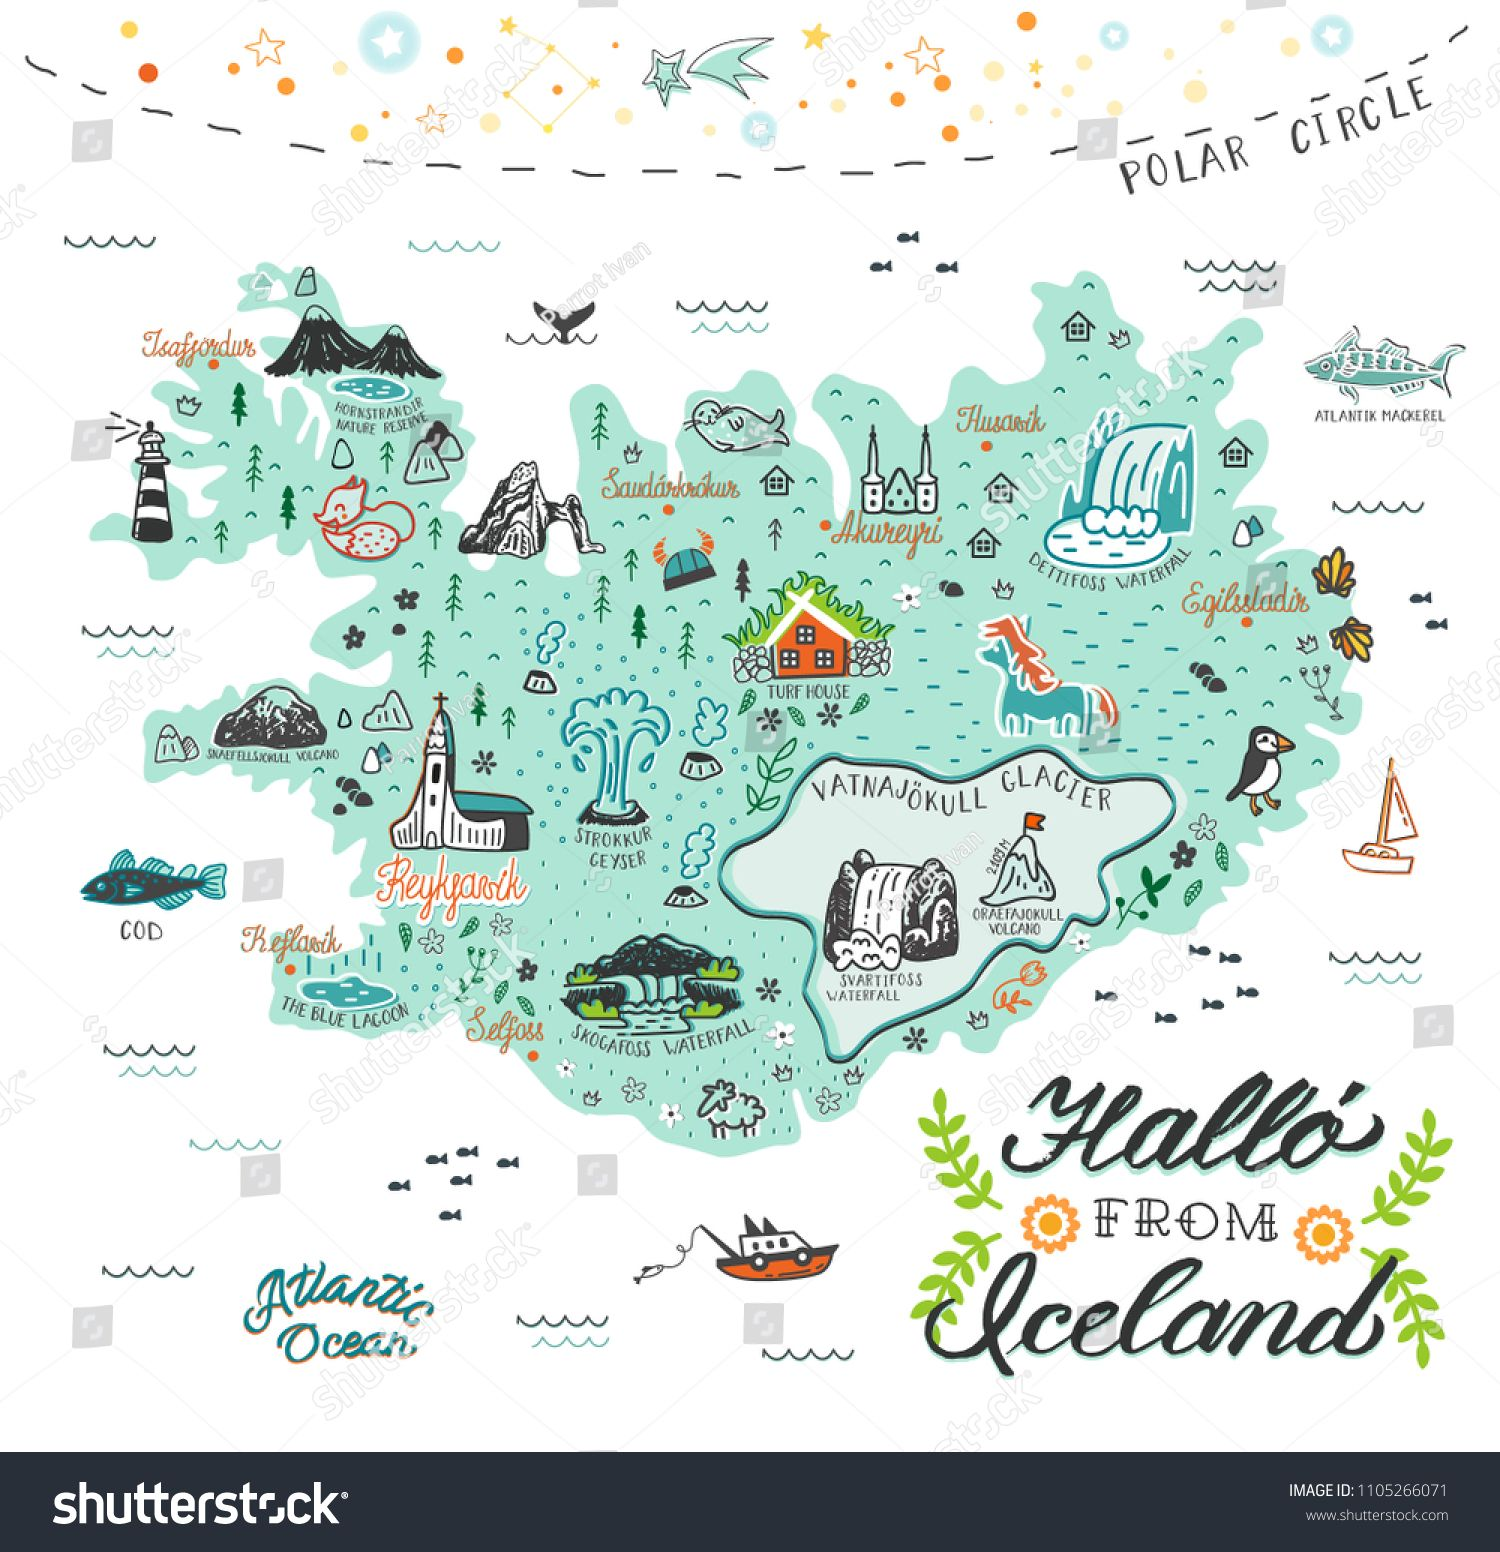 Hand Drawn Illustration Of Iceland Map With Tourist Attractions Travel Concept Hallo Icelandic Languag Iceland Map Iceland Travel Iceland Travel Photography